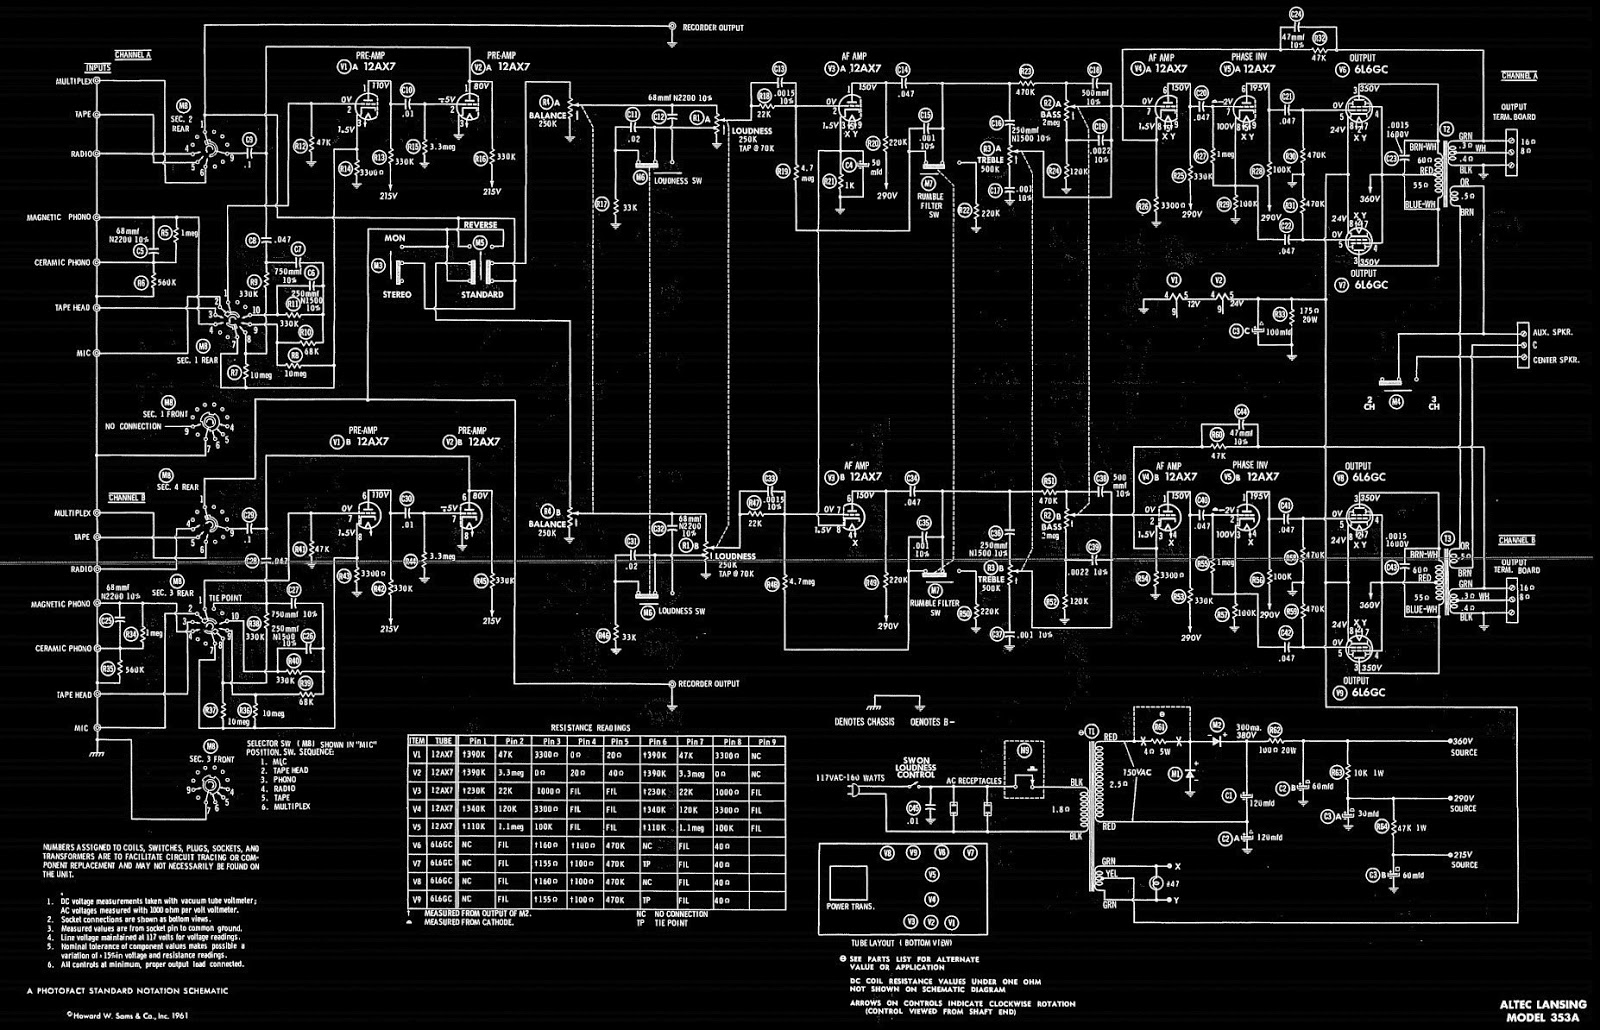 Acs295 Wiring Diagram Subwoofer Wiring Diagram Wiring Diagram ~ ODICIS